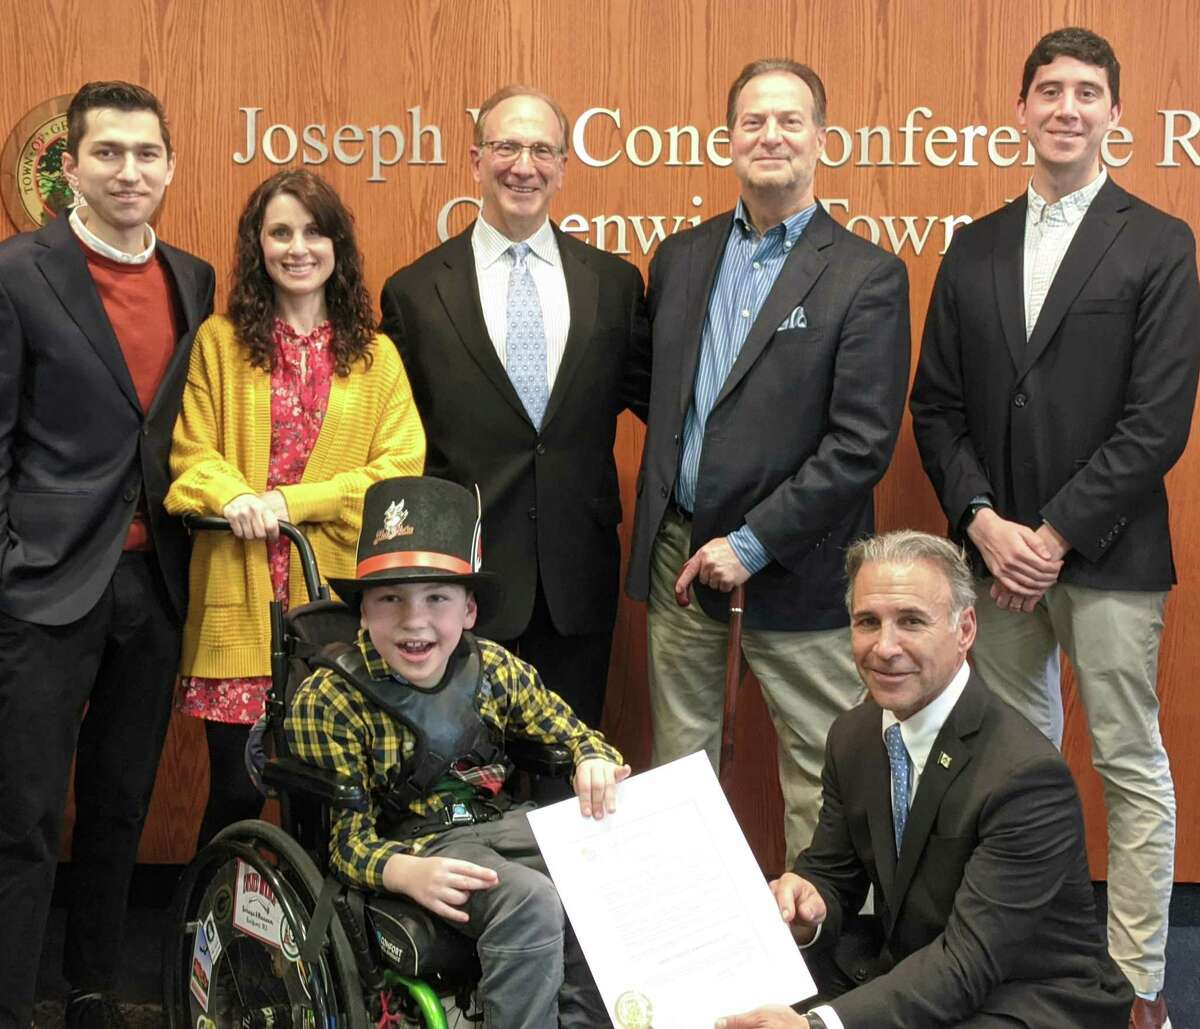 Greenwich marks Rare Disease Awareness Day on Wednesday by shining a light on diseases that are often underfunded in needed research and yet can have devastating results. First Selectman Fred Camillo is joined by Glenville School student Sam Buck, up front, as well as a large group of advocates, including from left, Mark Carles from the Fibrolamellar Cancer Foundation, Allyson Buck from Vanishing White Matters, John Hooper, chair of the Rare Cancer Coalition, Phil Marella, co-founder of the Dana's Angels Research Trust, and Greg Pauletti, co-founder of Tiny Dancer Projects.